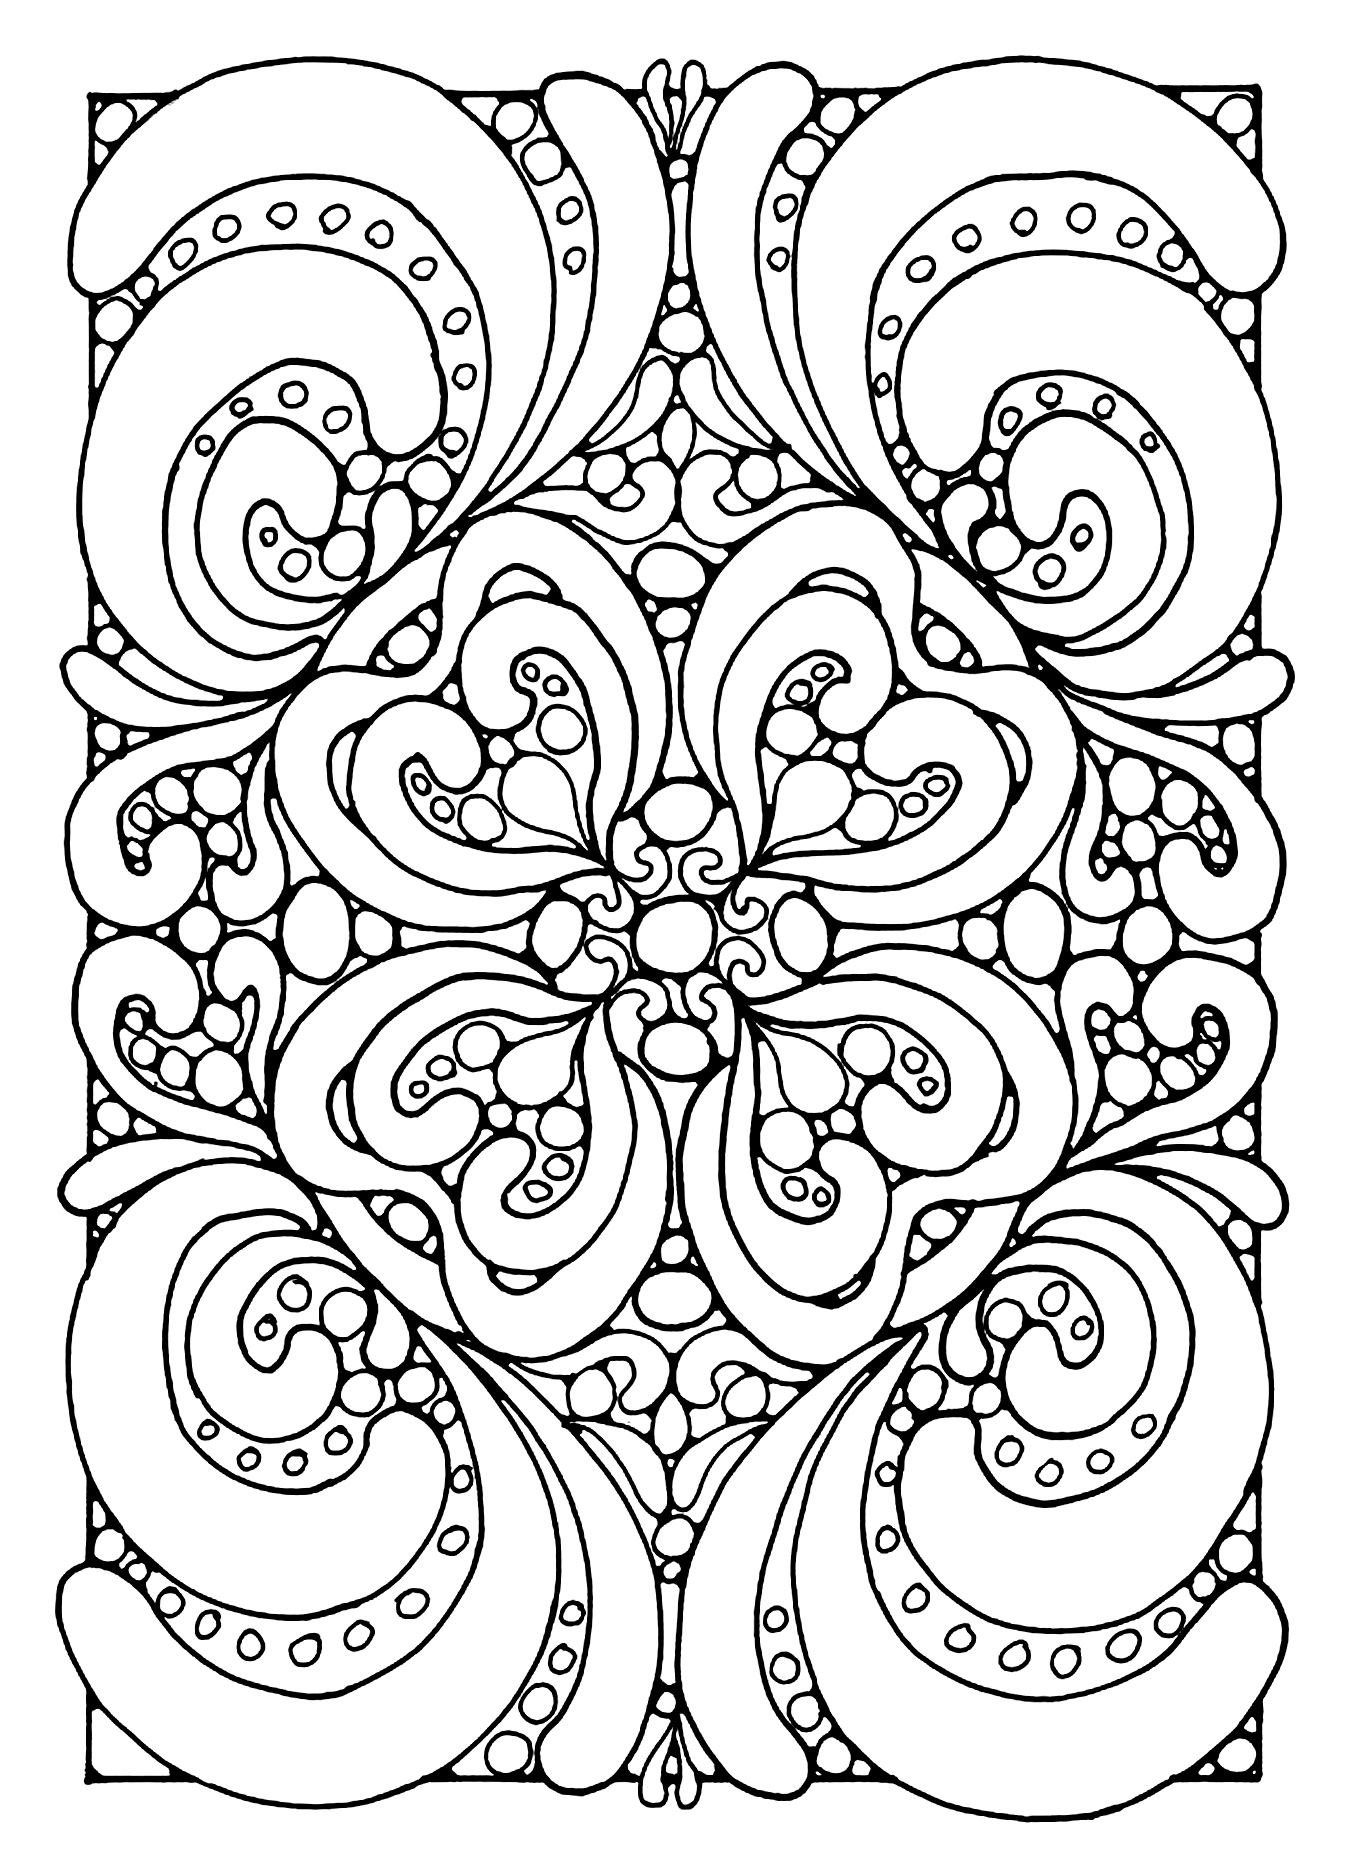 Cuss Word Coloring Pages likewise  further Coloring Pages Anti Stress For Children further 417216352959589774 as well JonPearsall. on adult coloring pages for anxiety